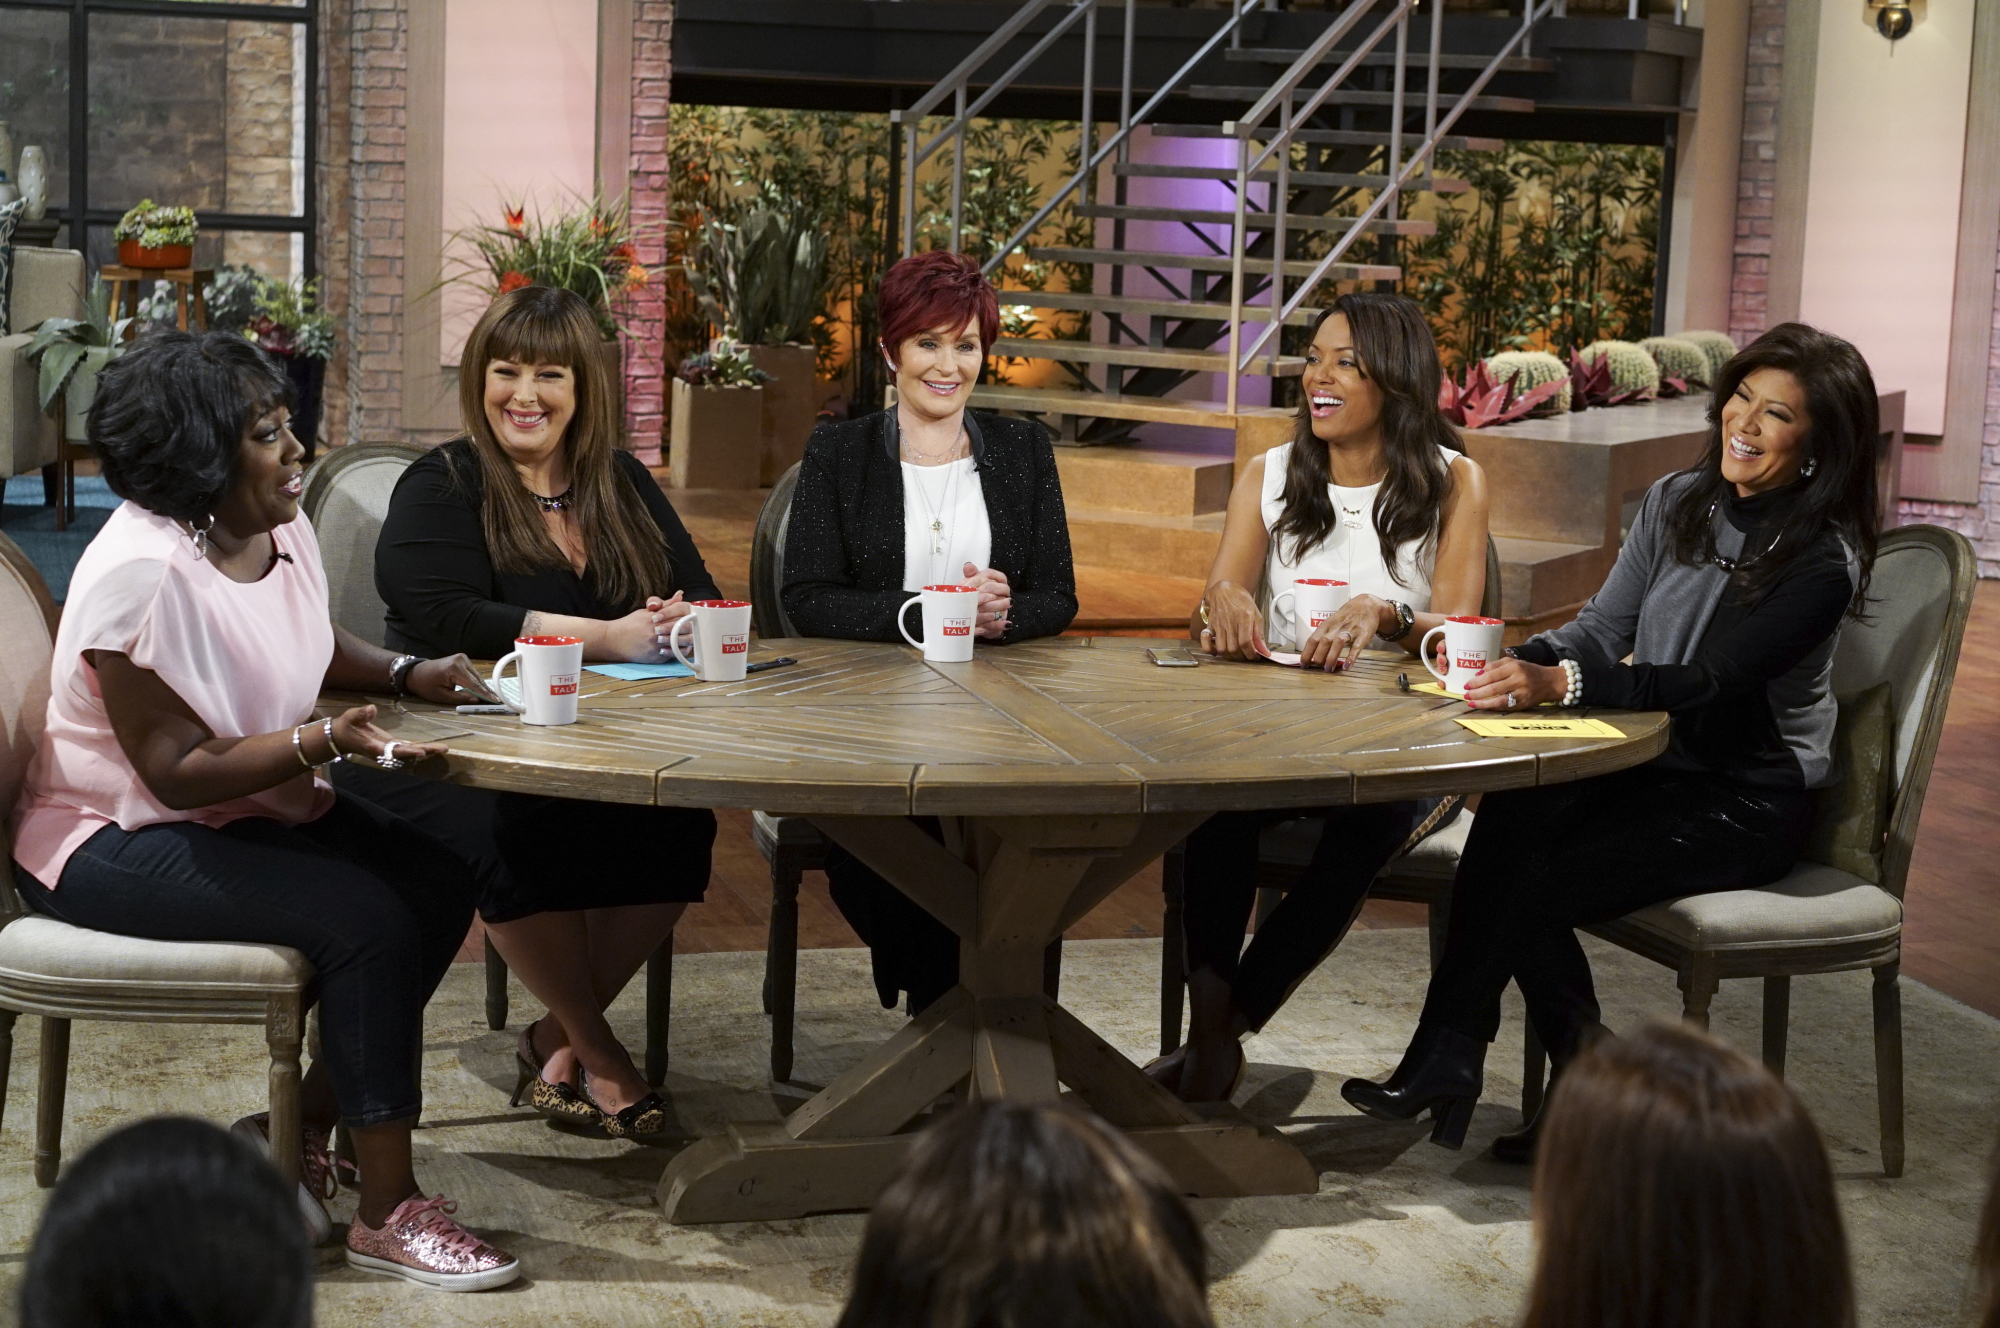 6. Carnie Wilson filled in as guest co-host.